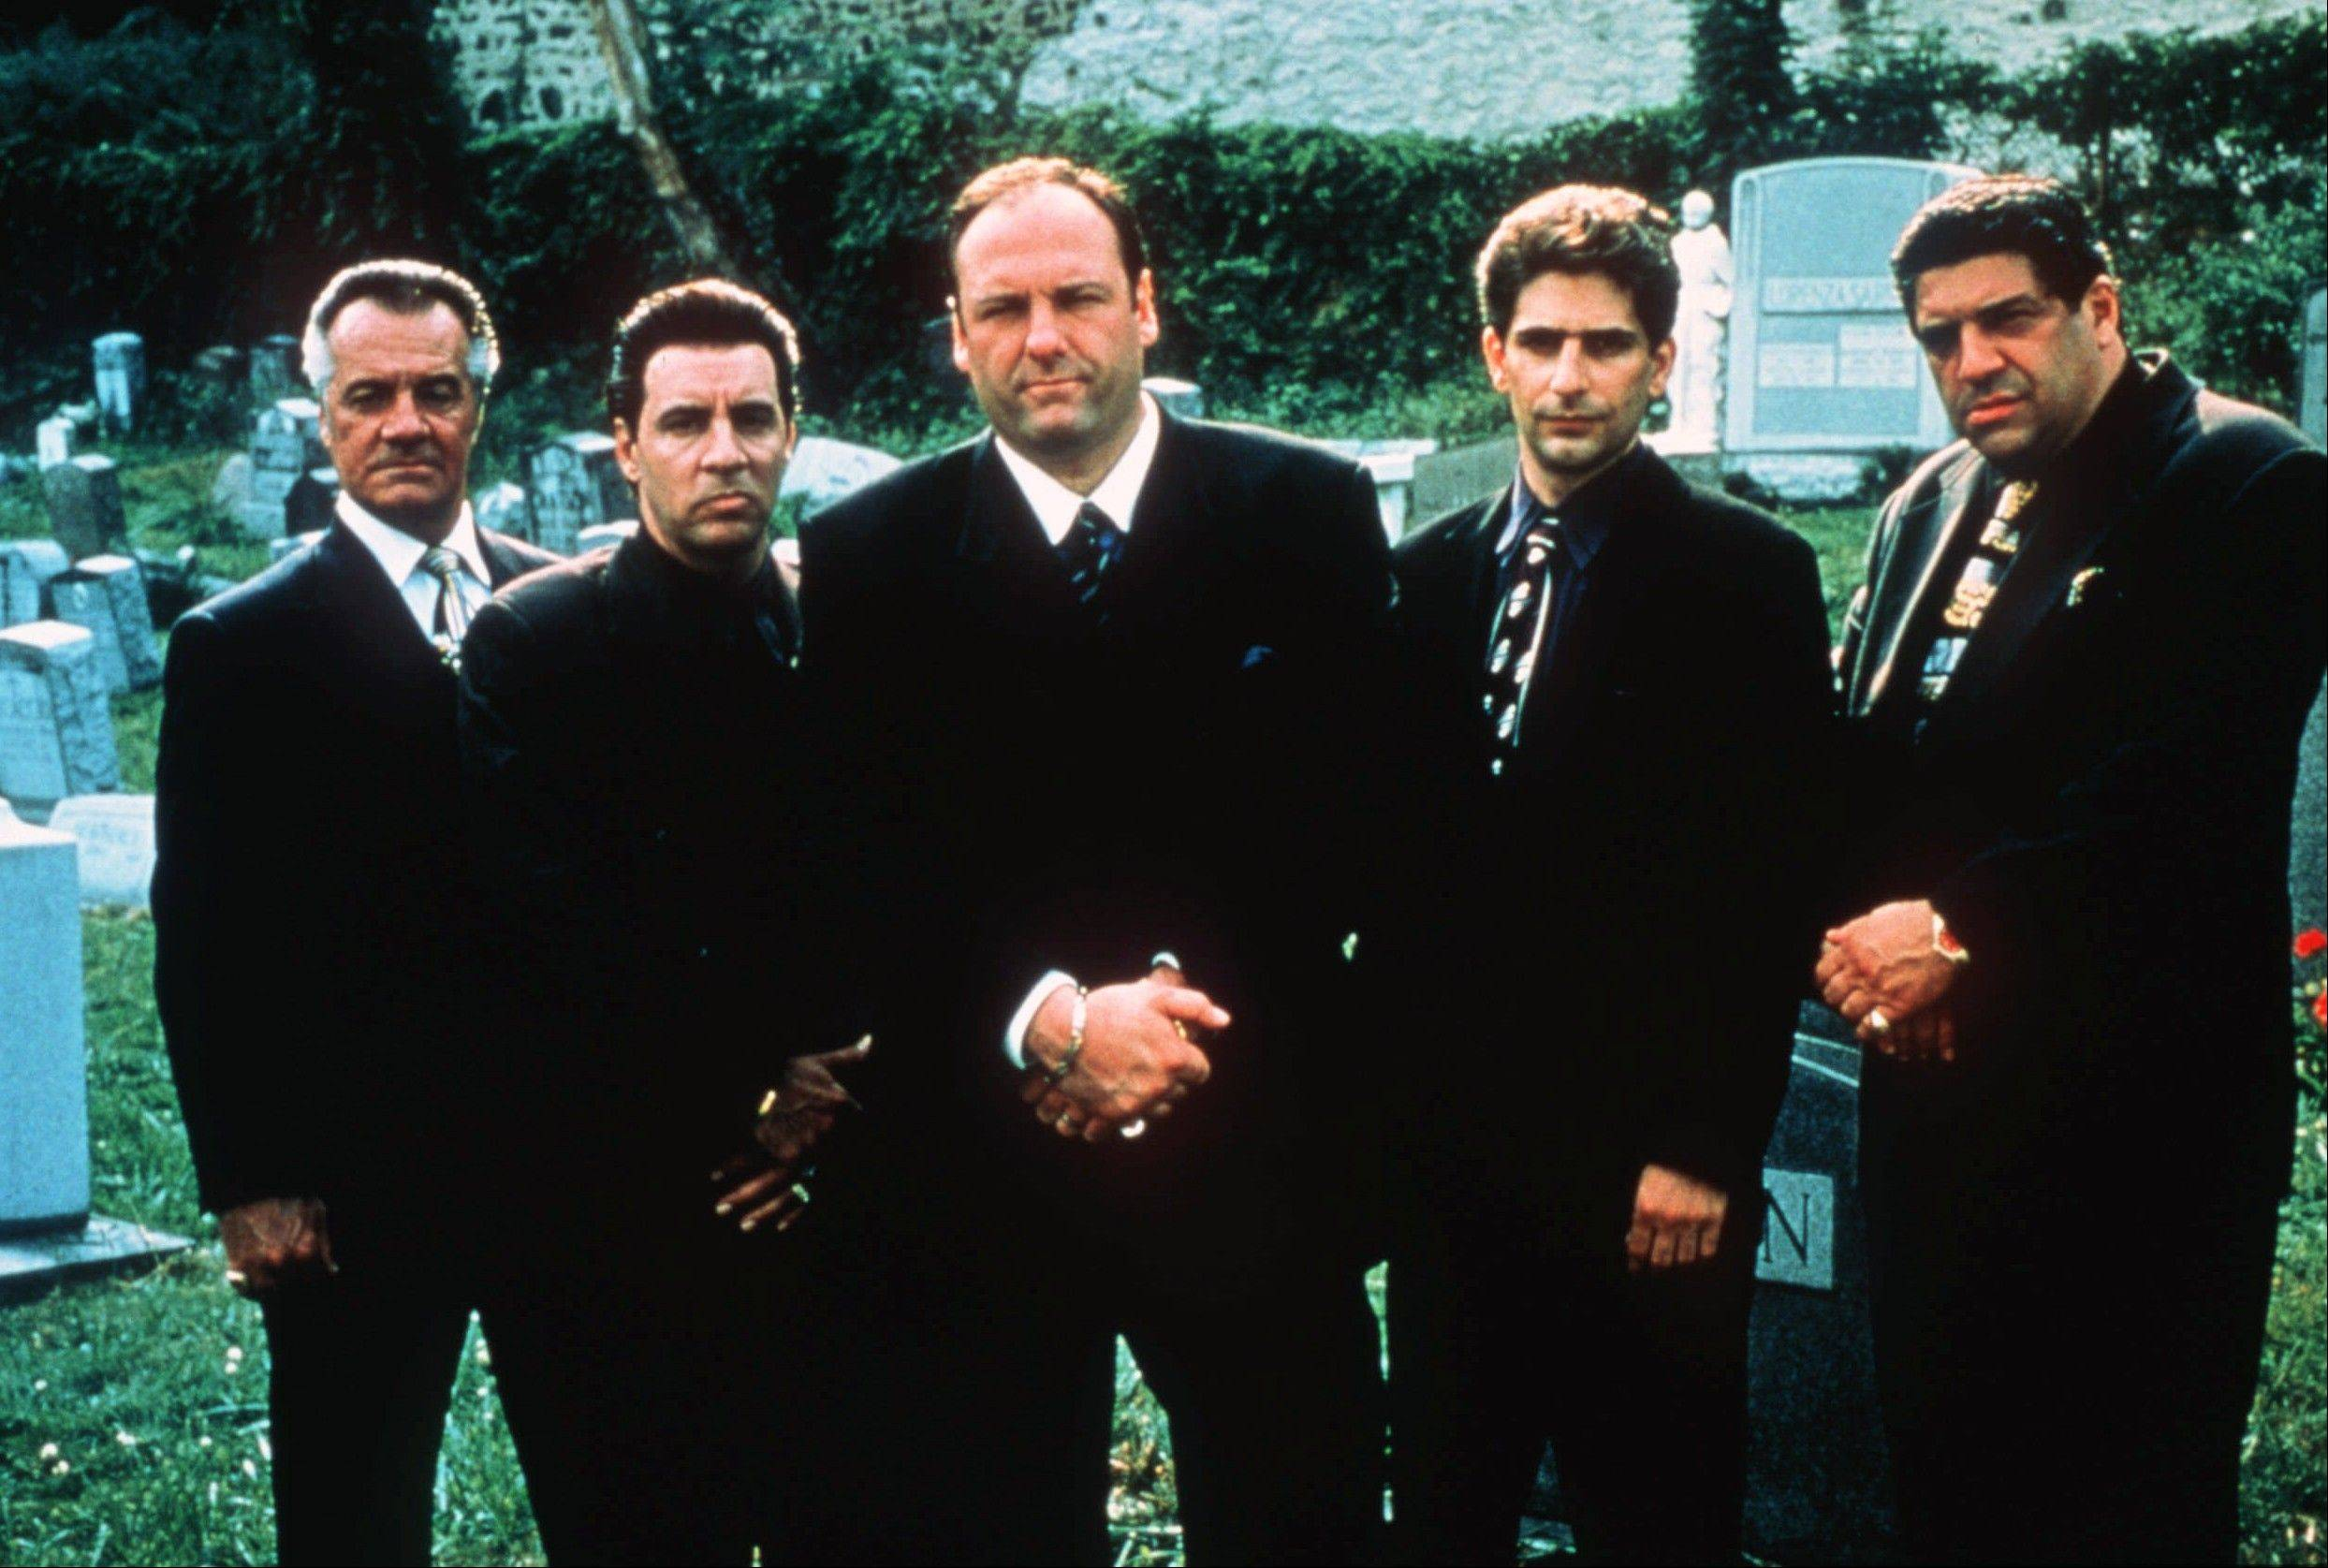 "The cast of ""The Sopranos"" was as dominant in the ''90s as Michael Jordan's Bulls team, according to Mike North. From left: Tony Sirico, Steven Van Zandt, James Gandolfini, Michael Imperioli and Vicint Pastore. Gandolfini died Wednesday in Italy at age 51."